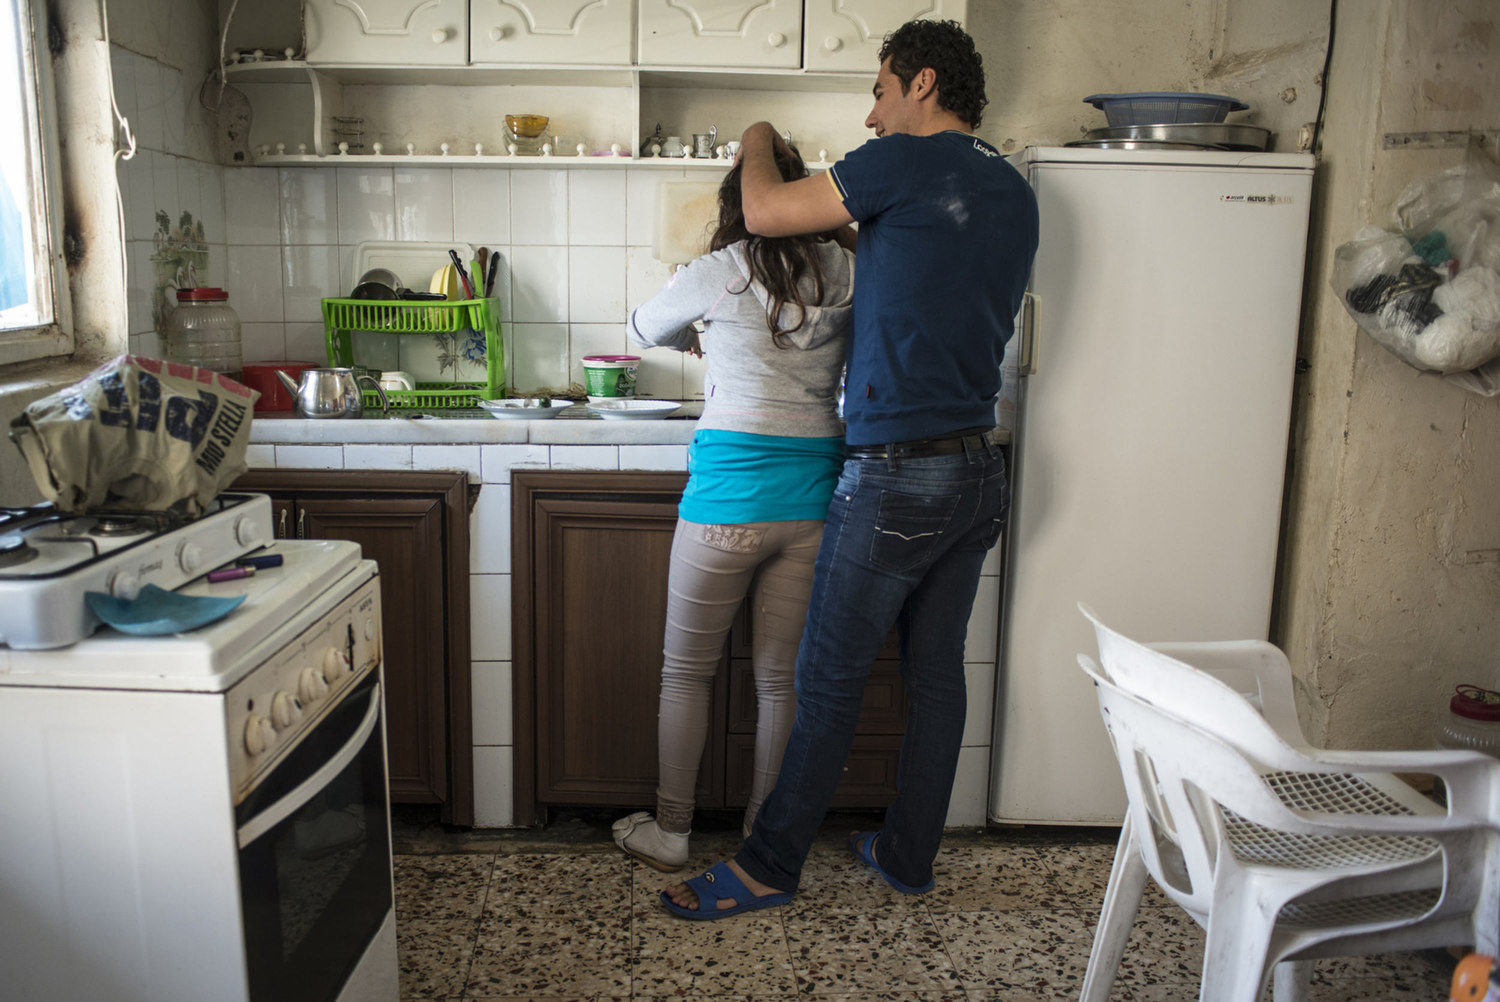 Another couple wash dishes and play around at their shared home with the Mirza family in the Cultural Center on October 30th, 2014 in Midyat, Turkey.